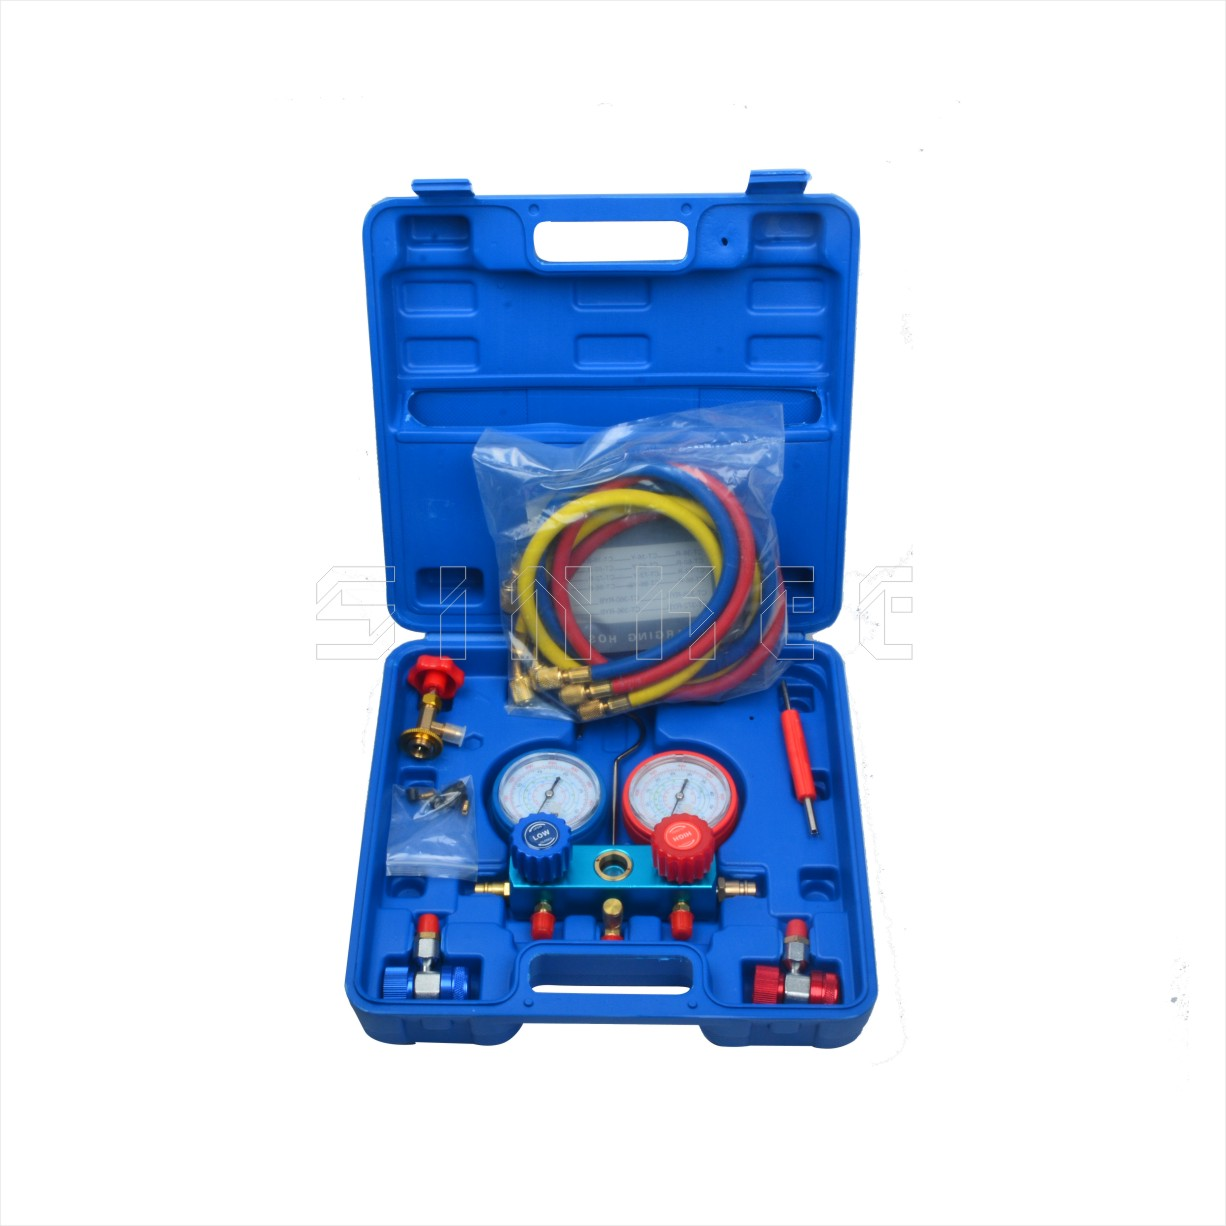 R134A AC A/C Collecteur Jauge Test Set Climatiseur De Charge Testeur Pompe Service Kit SK1553